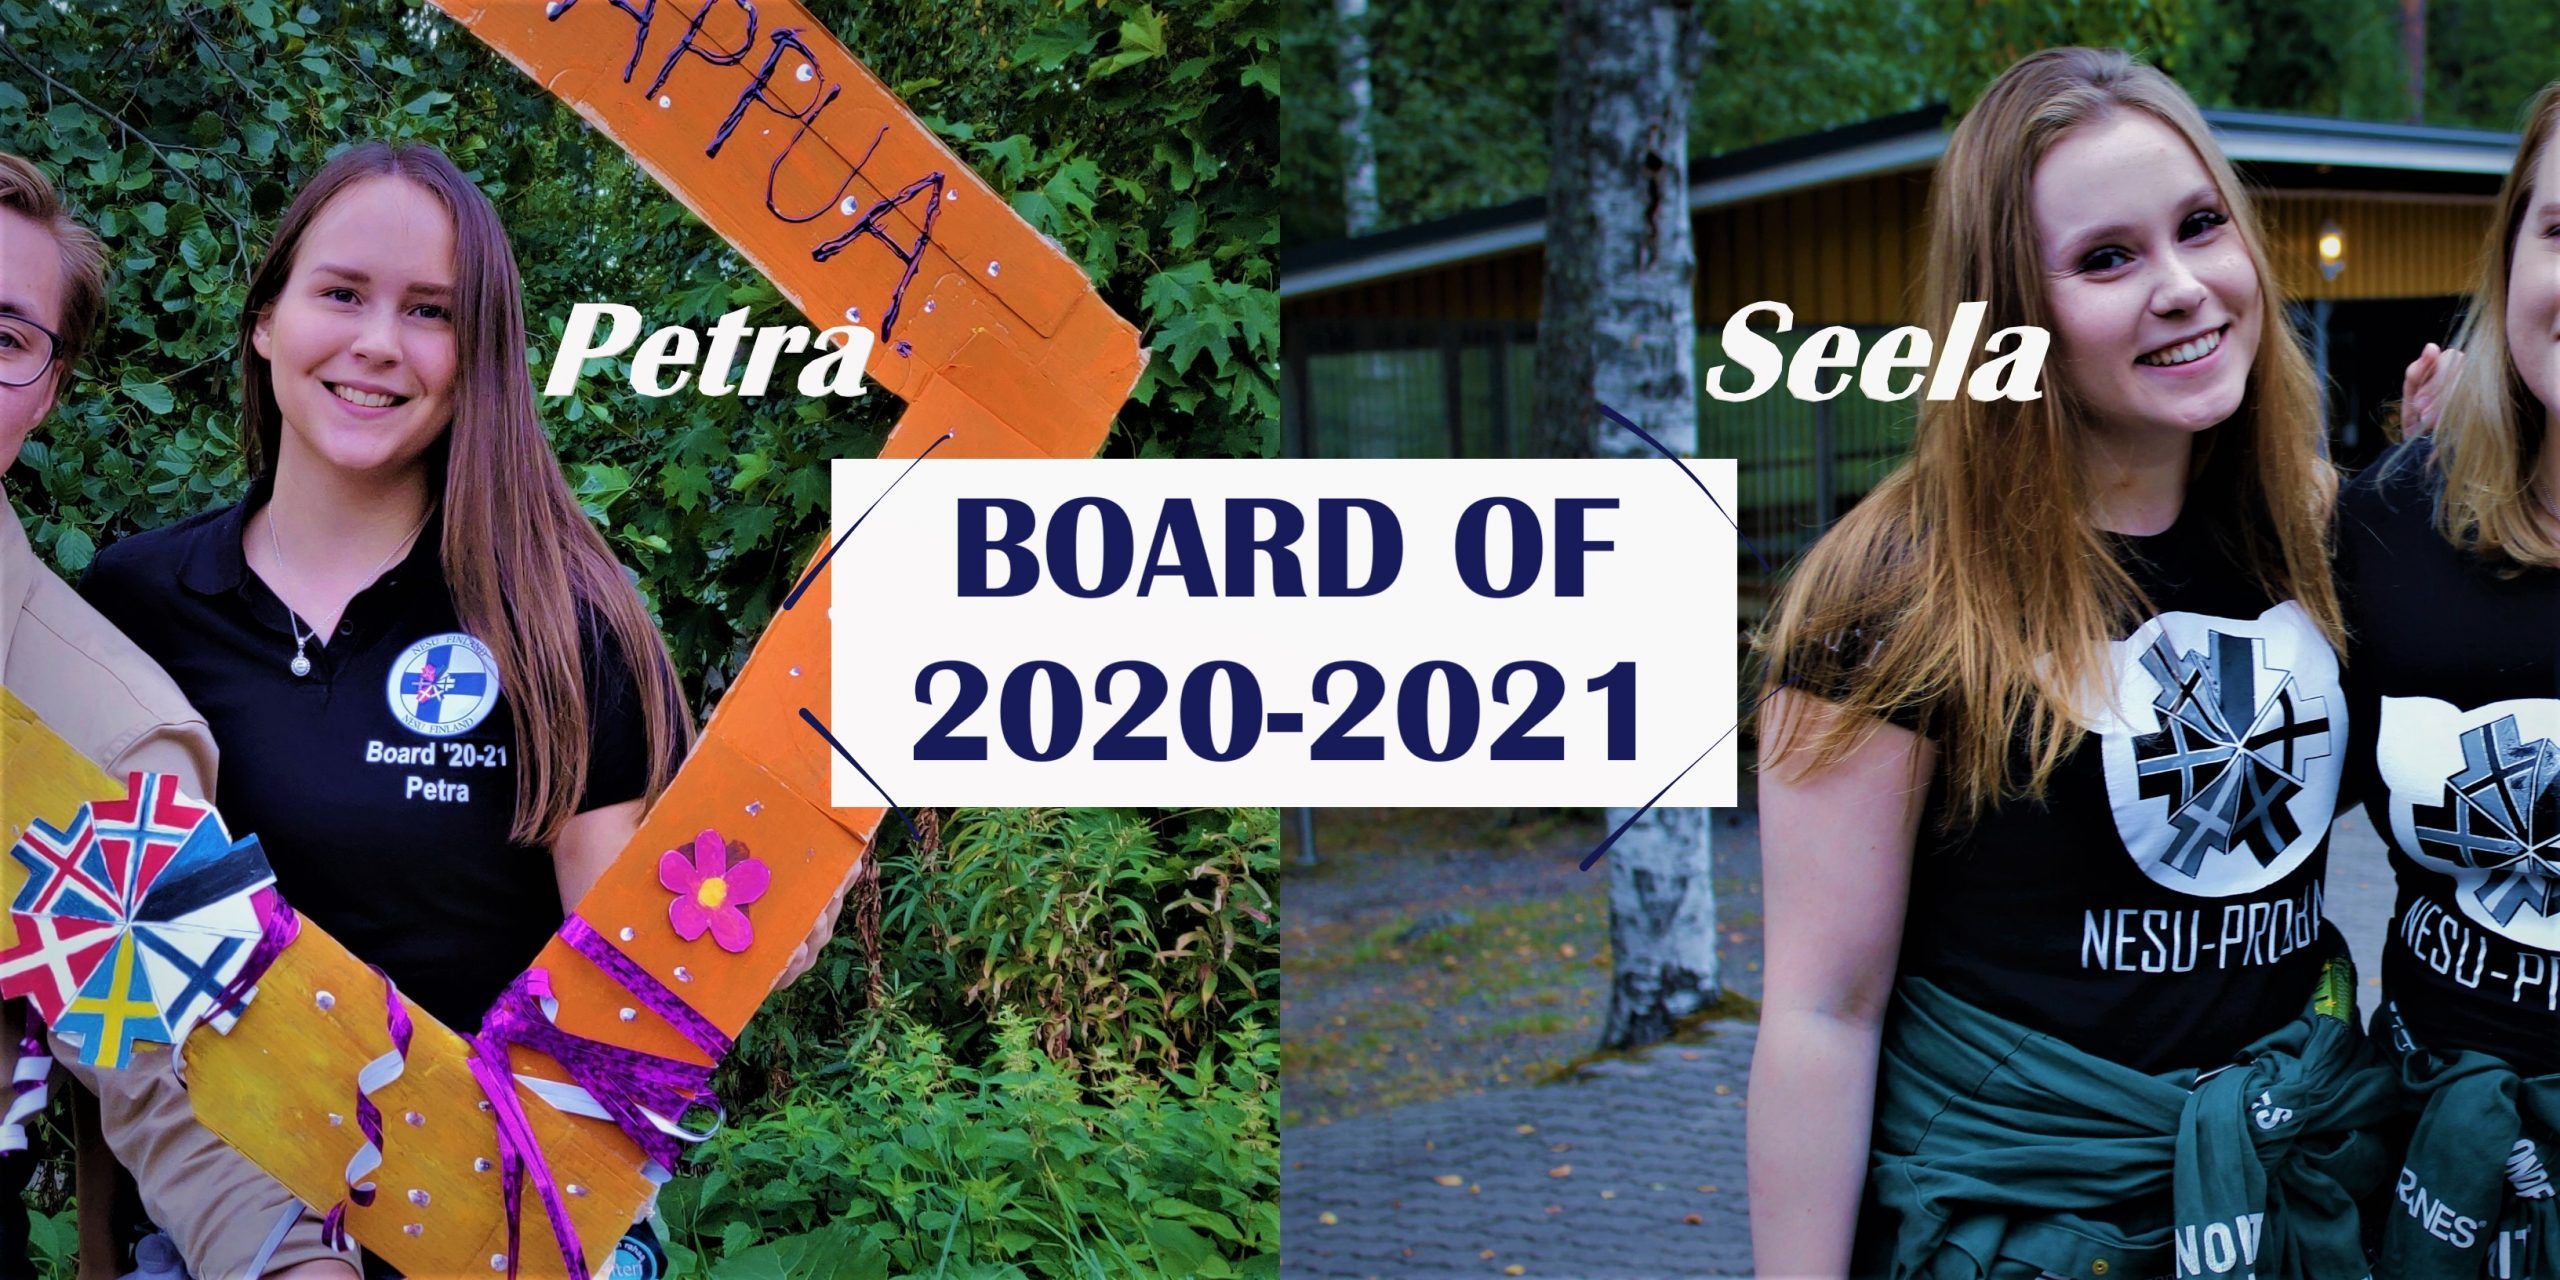 All Aboard: Board of 2020-2021 (Part 2/3)